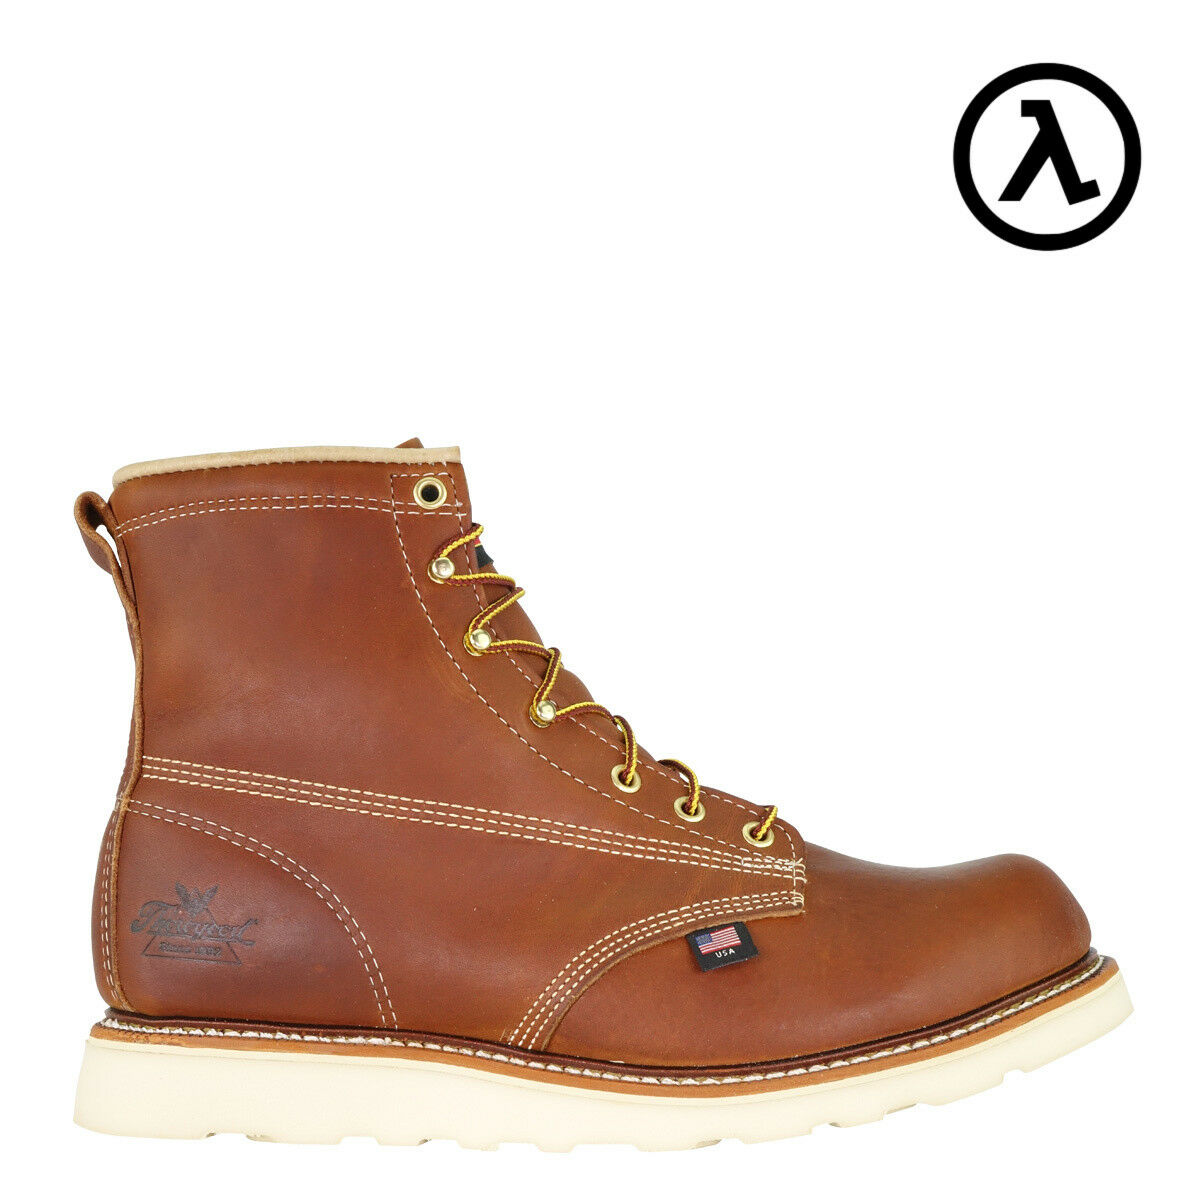 THgoldGOOD AMERICAN HERITAGE WEDGE EH 6  WORK BOOTS 814-4355 - ALL SIZES